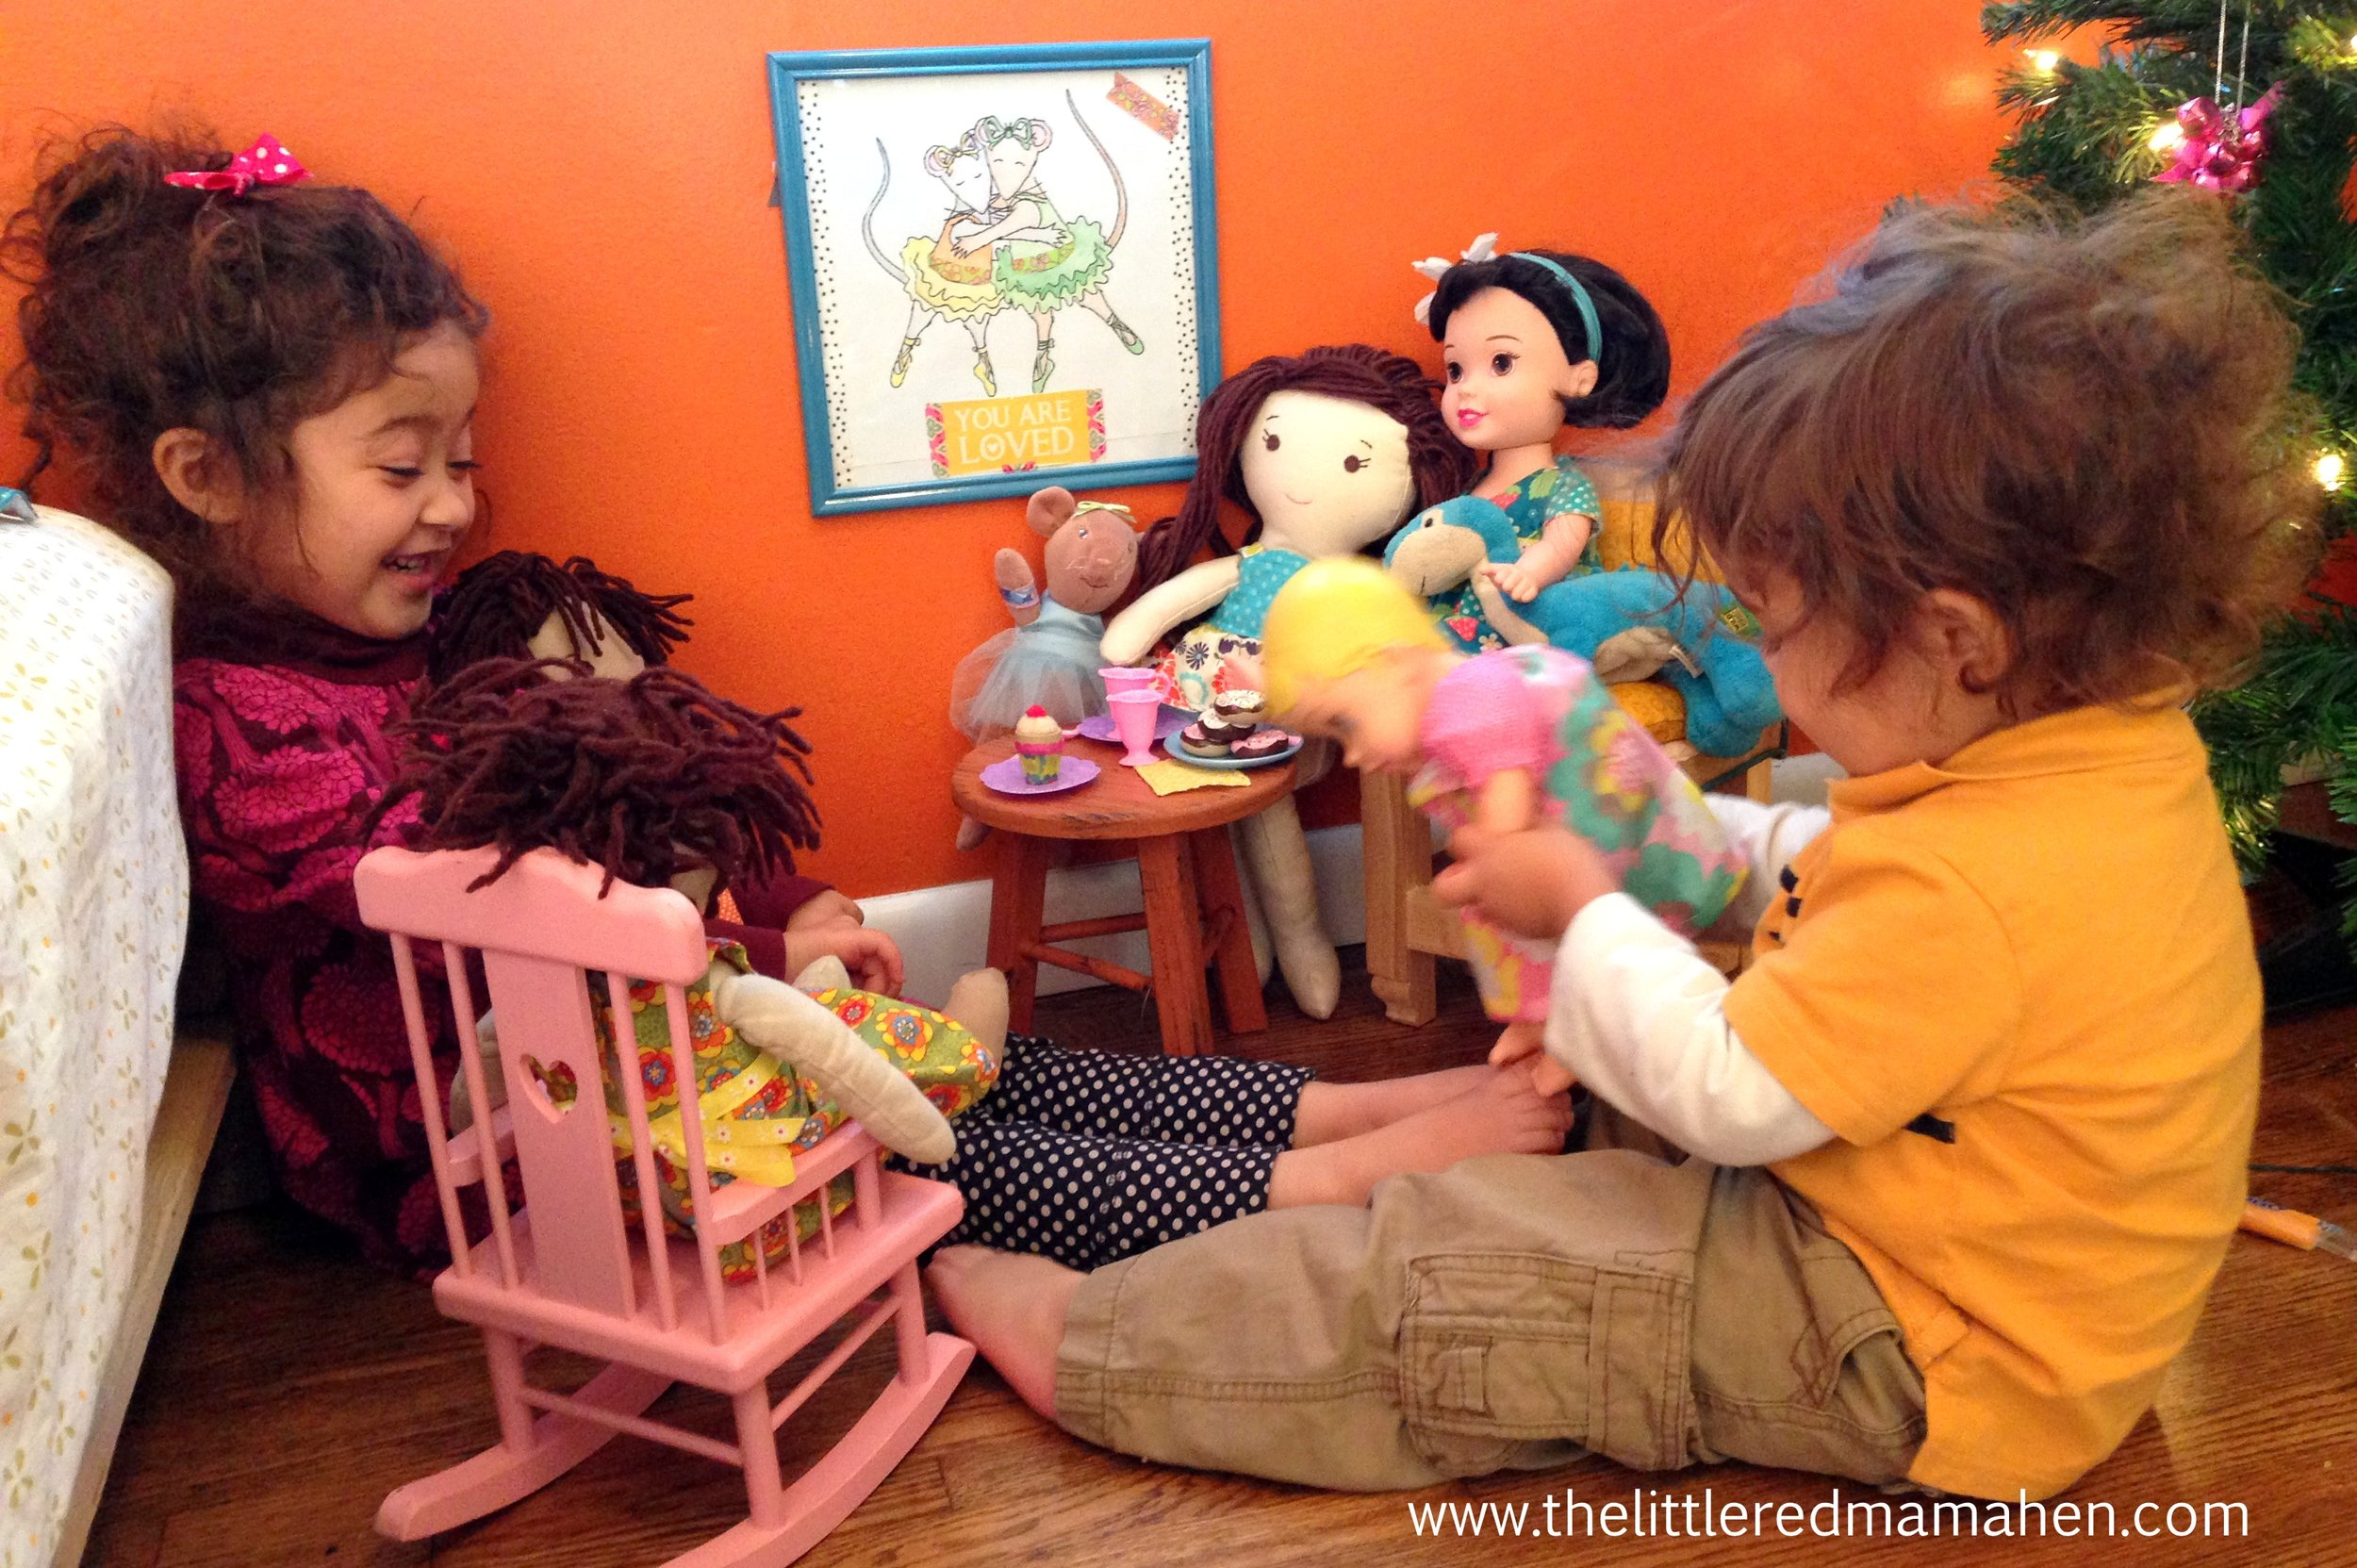 Plastic, plush, or handmade- everyone is welcome at this tea party!